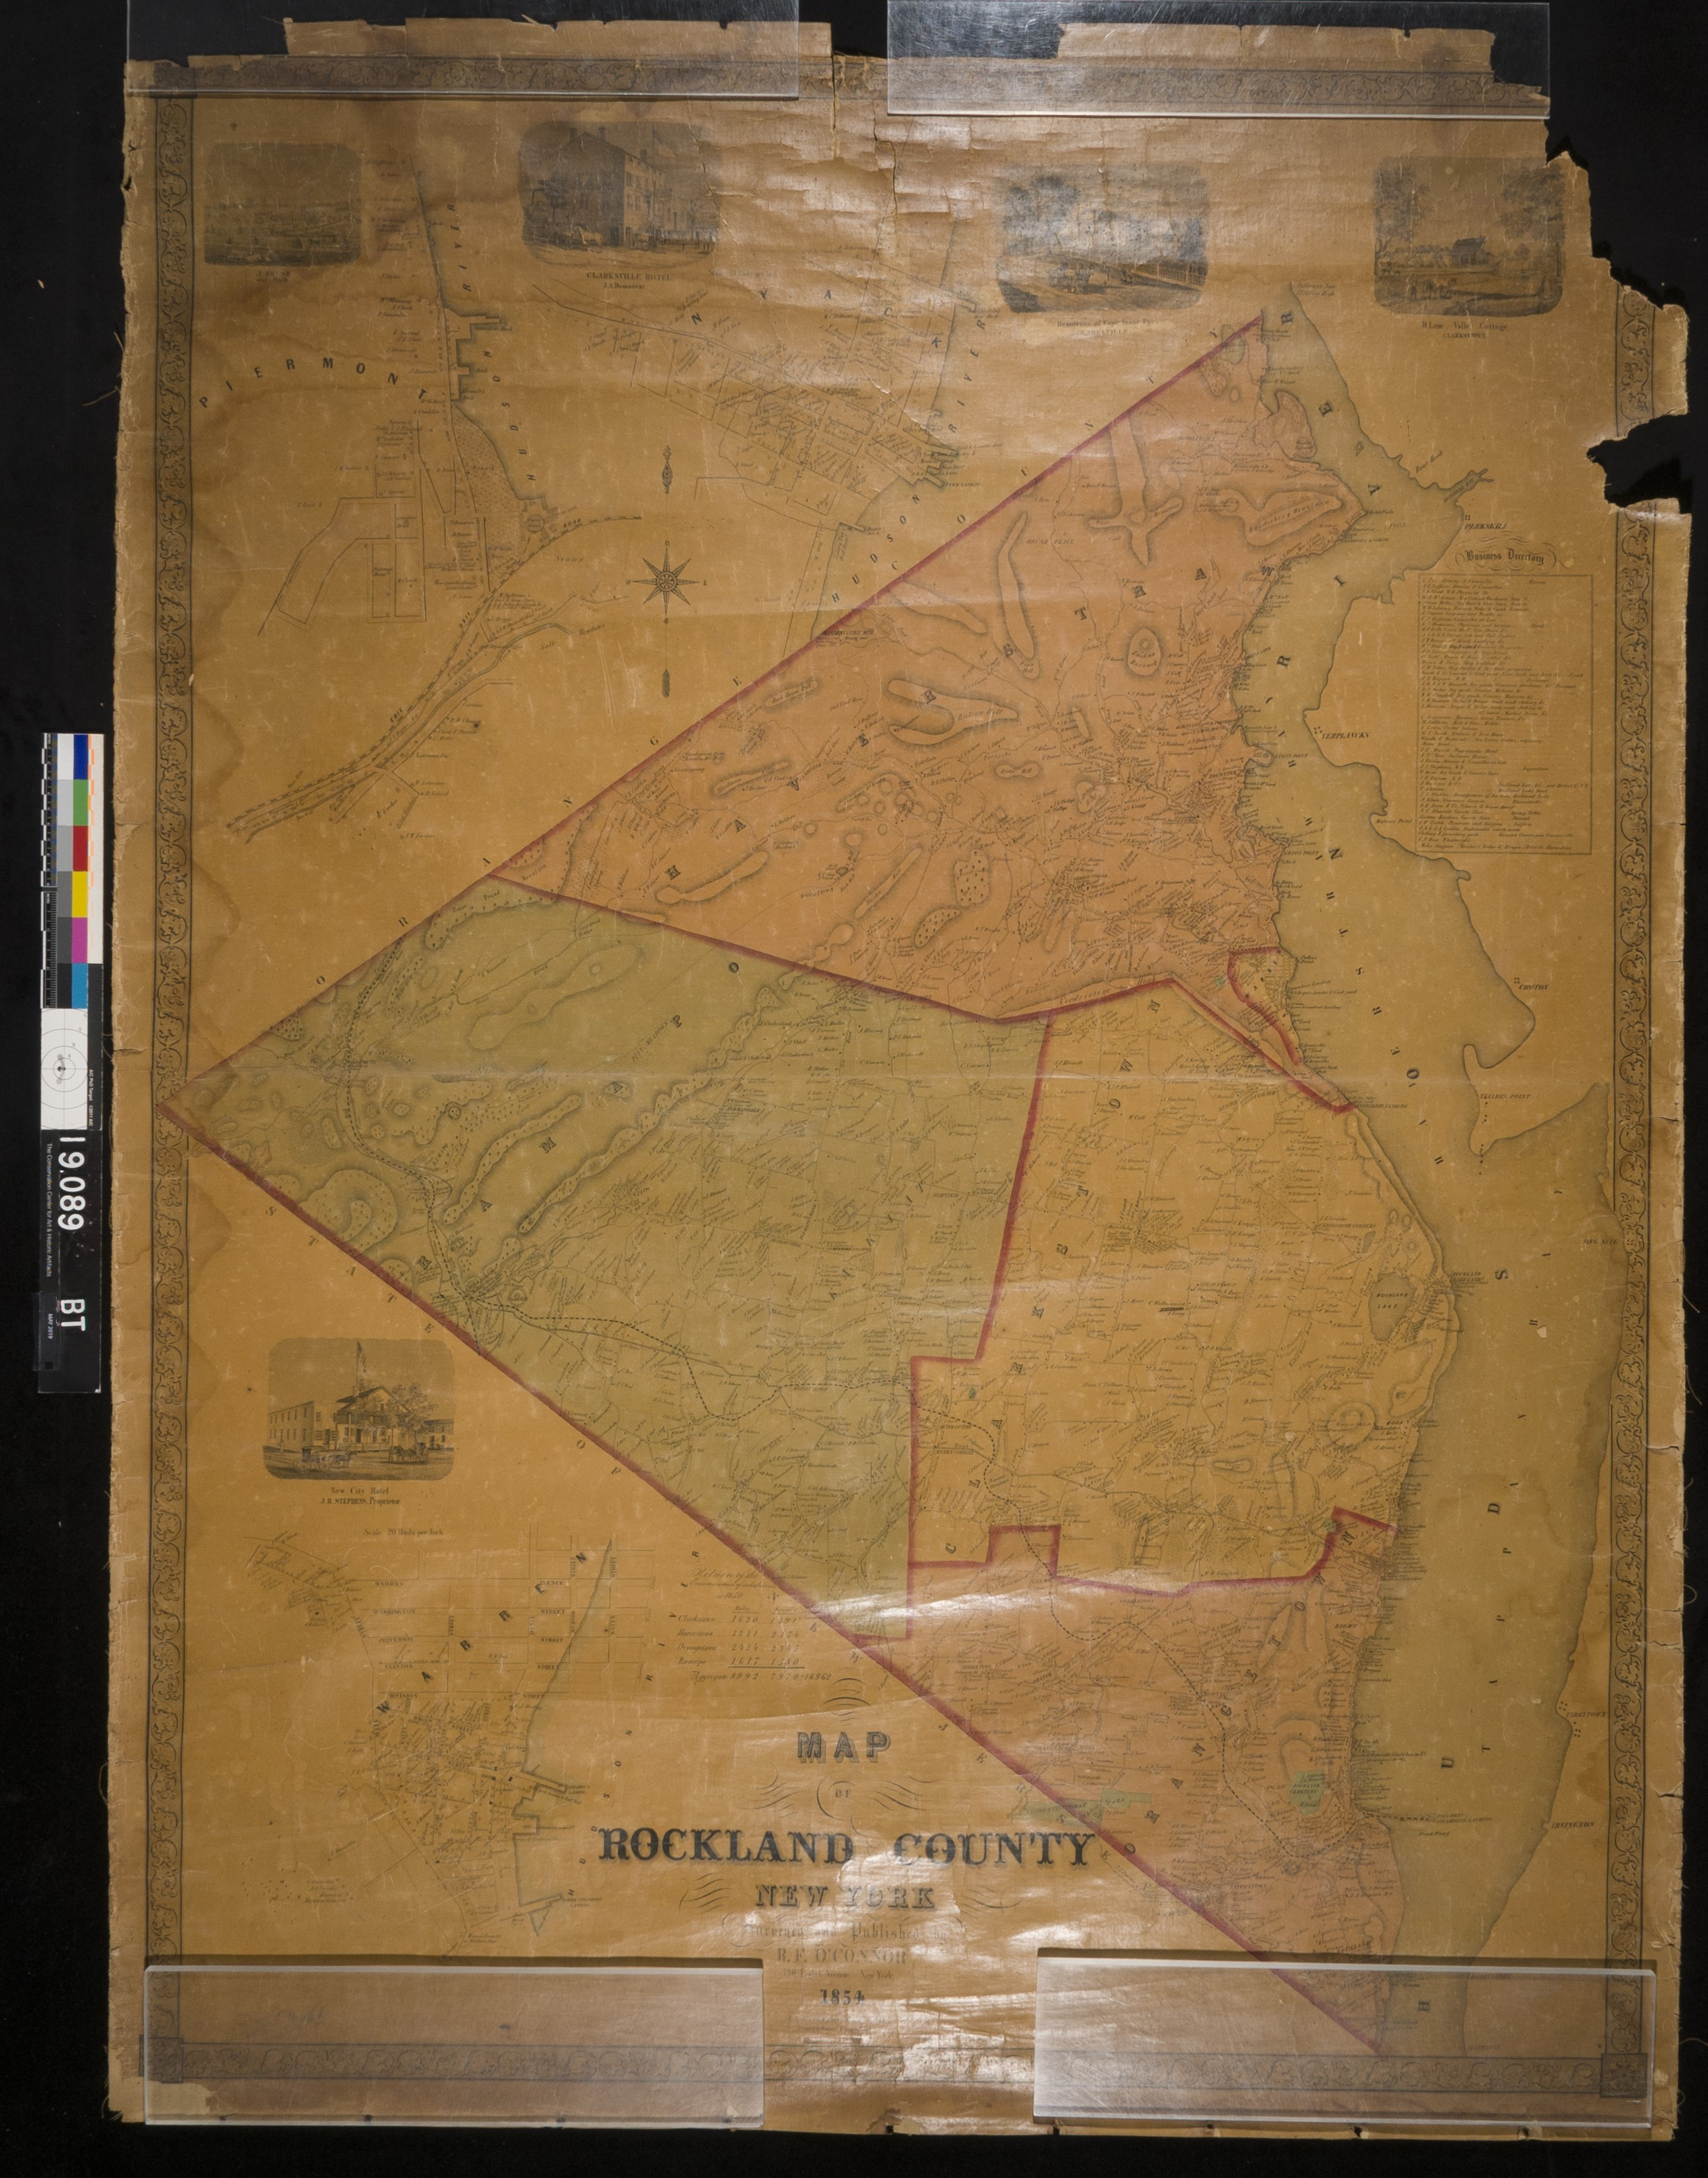 1854 Map of Rockland County, NY, before treatment